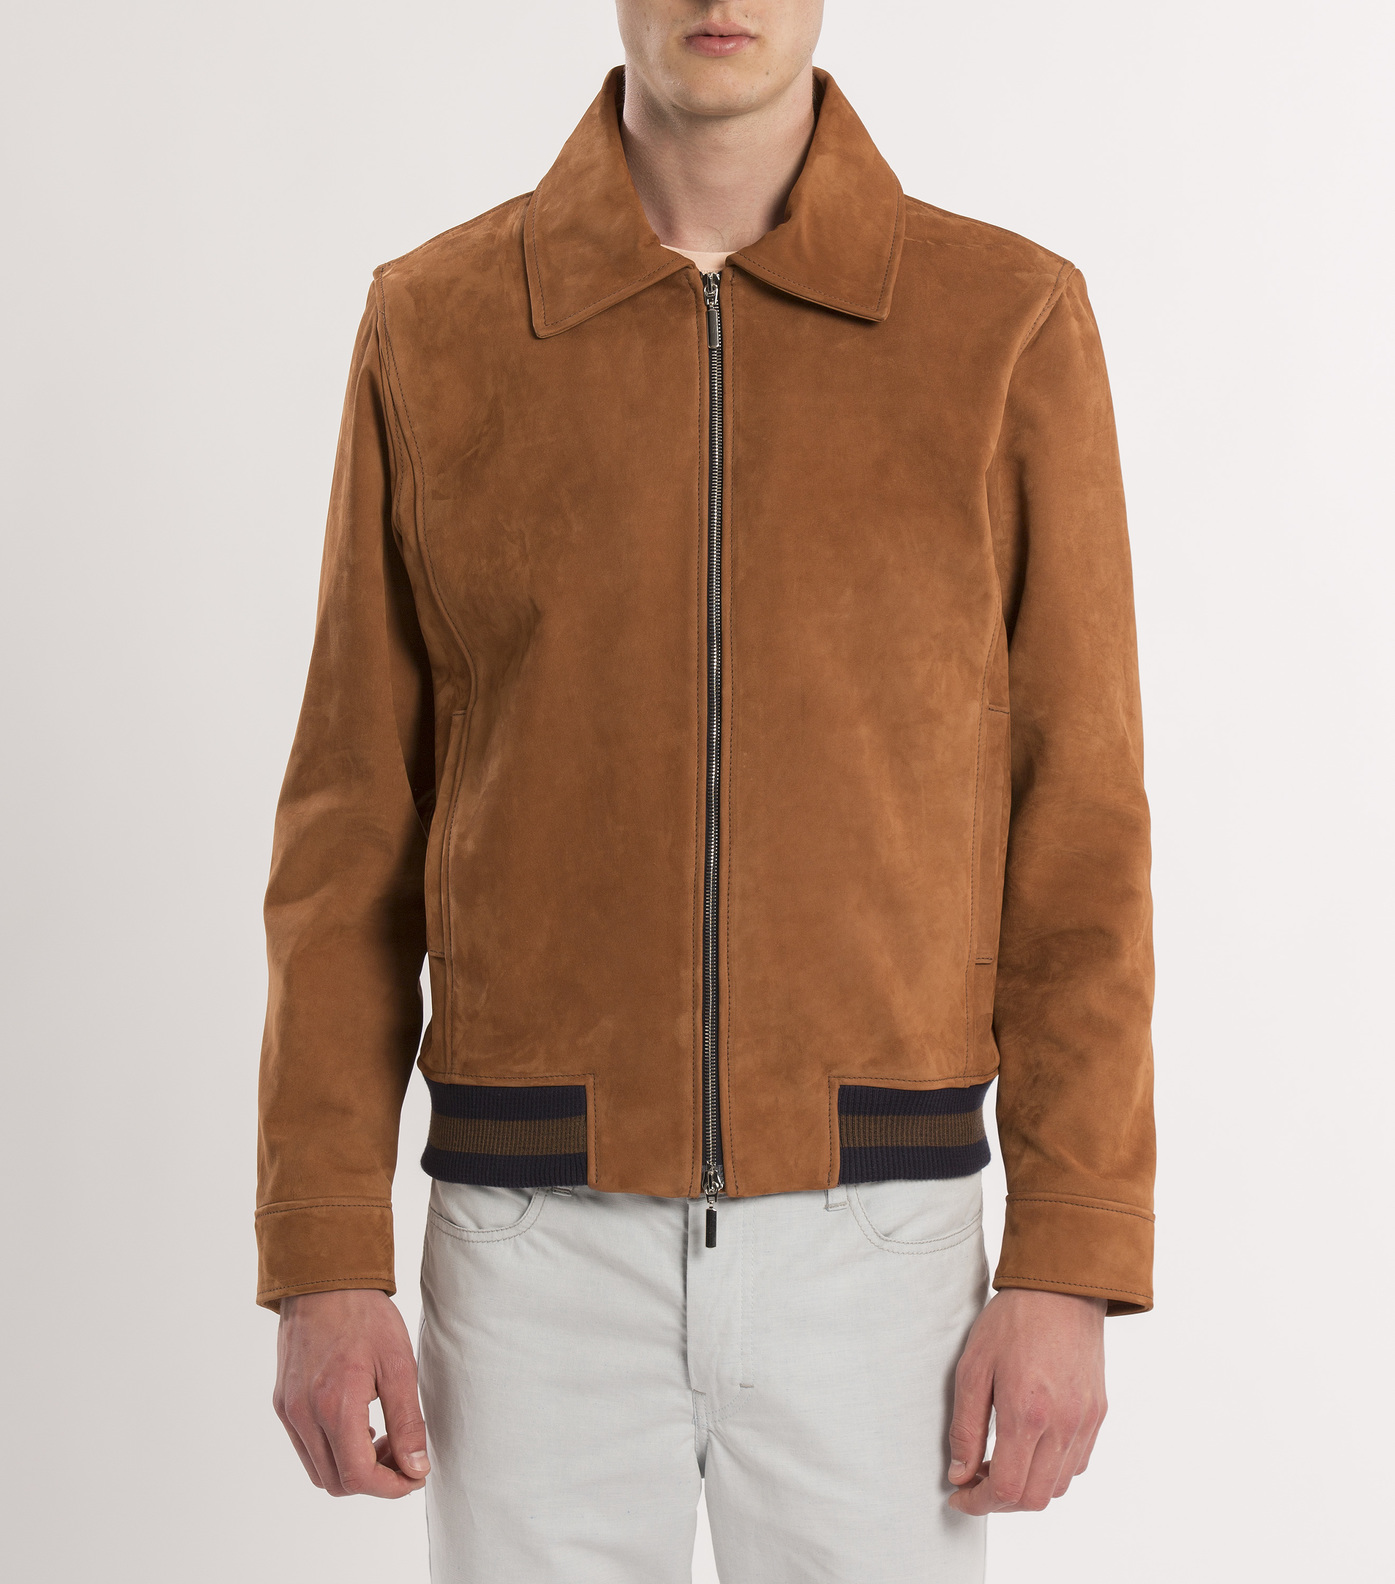 LEATHER JACKET BELISAIRE - Camel suede